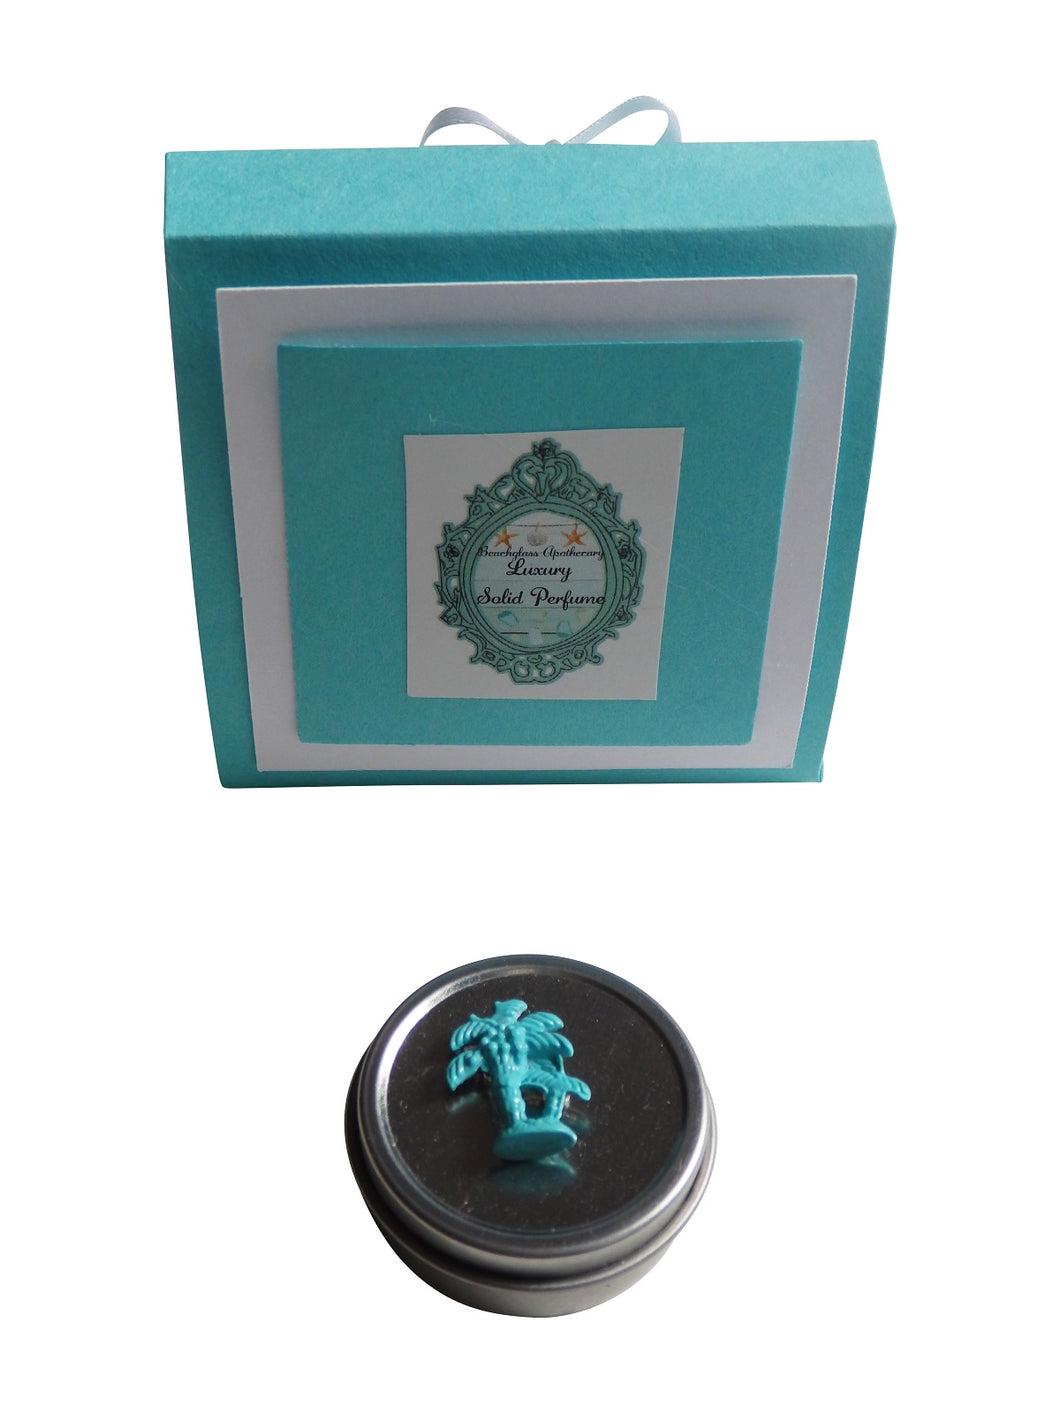 Luxury Beach PALM TREE Solid Perfume-Comes with a free Necklace Charm